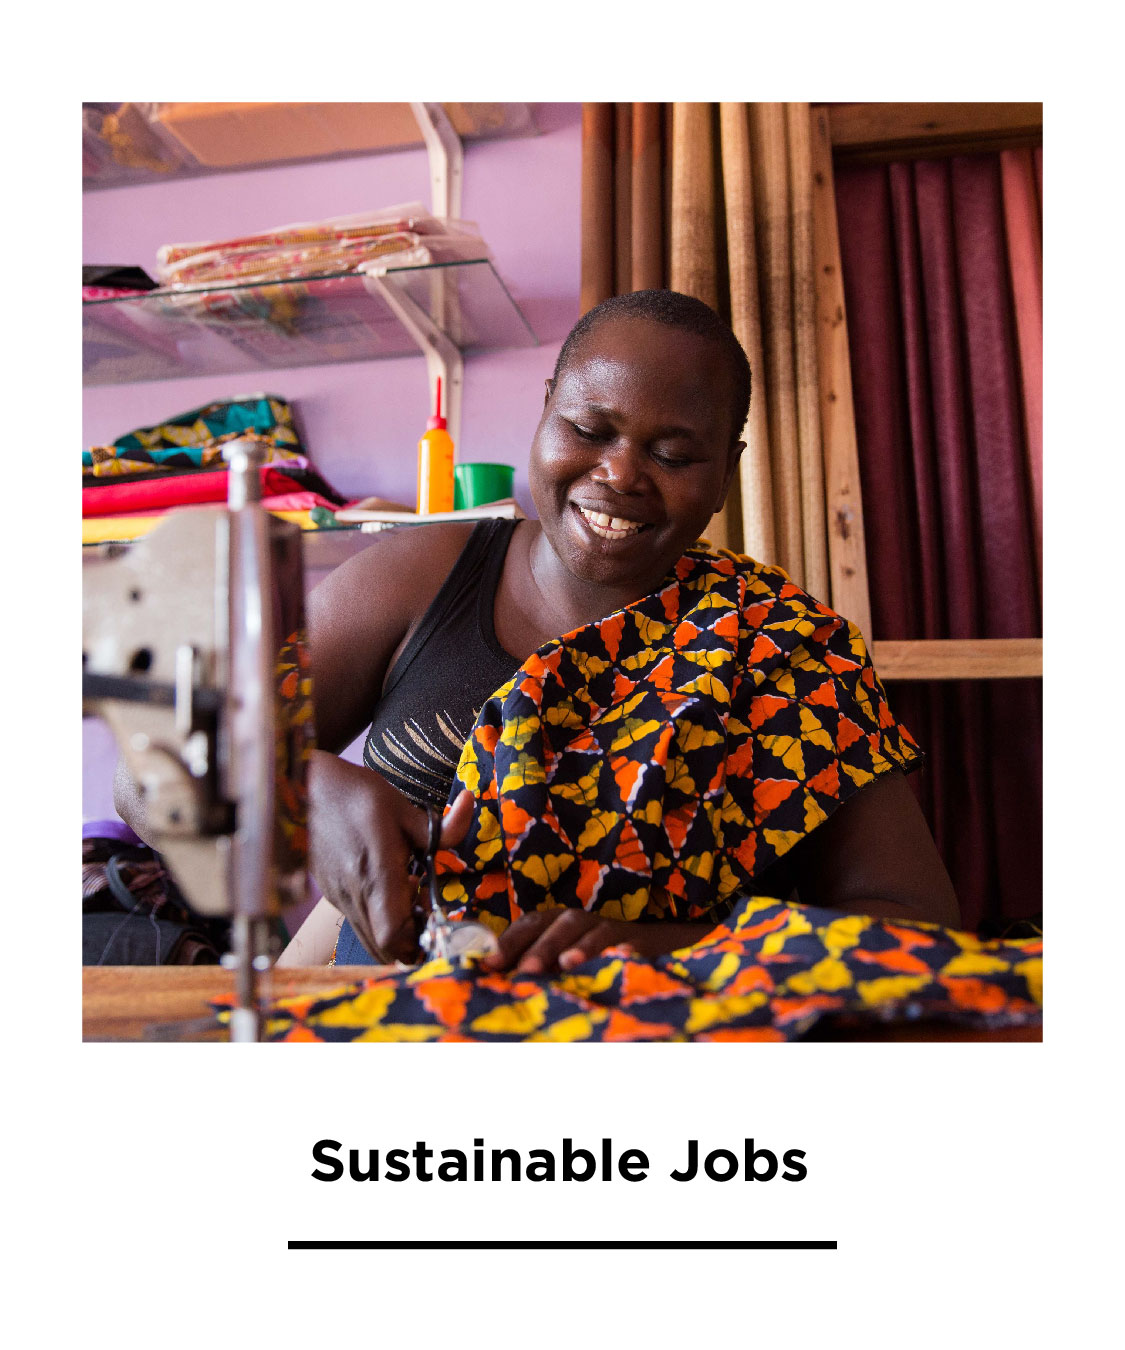 We invest in local businesses so that individuals can pursue their dreams as artists, fashion designers, entrepreneurs, writers, photographers, etc.  We carefully curate and create work opportunities with artisans based on their skills and knowledge in various creative areas.